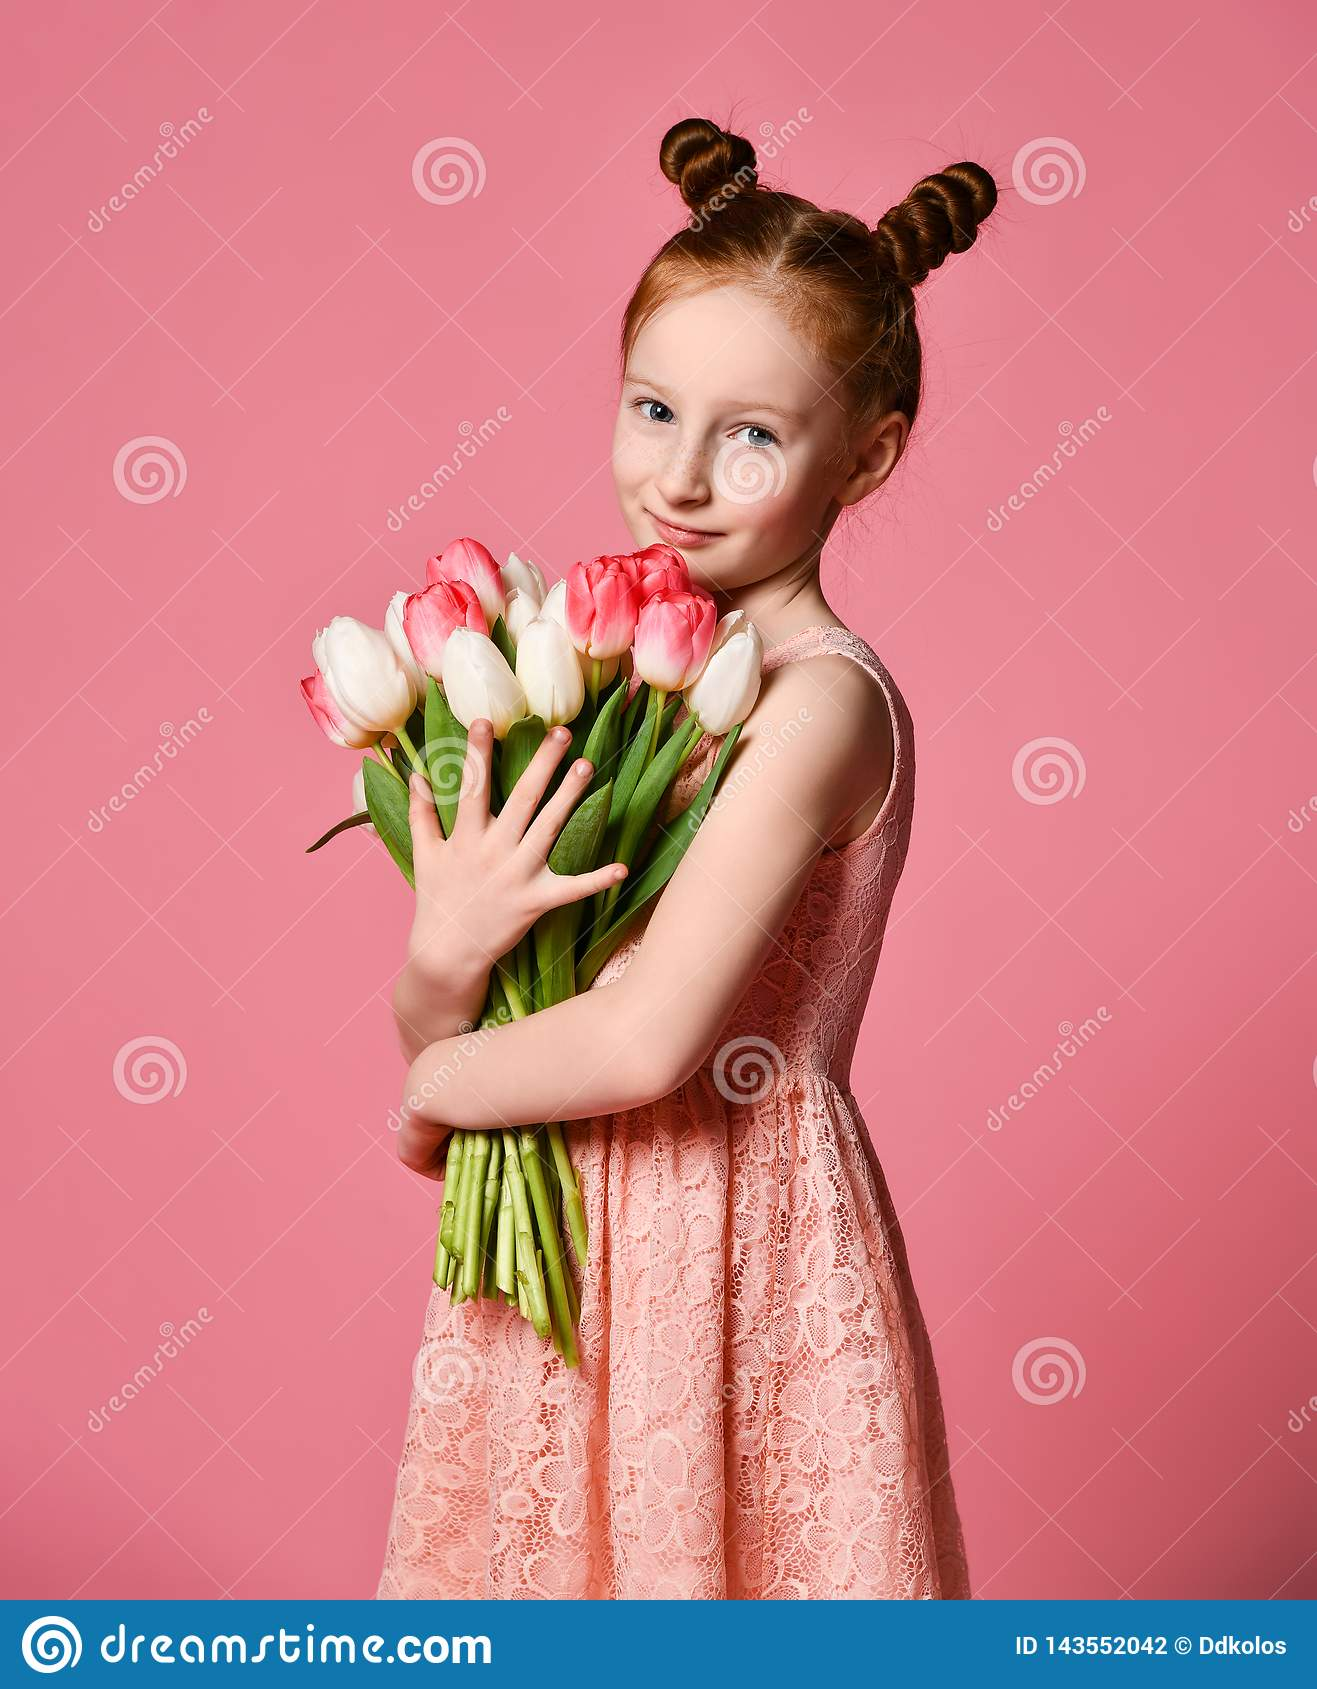 Portrait of a beautiful young girl in dress holding big bouquet of irises and tulips isolated over pink background